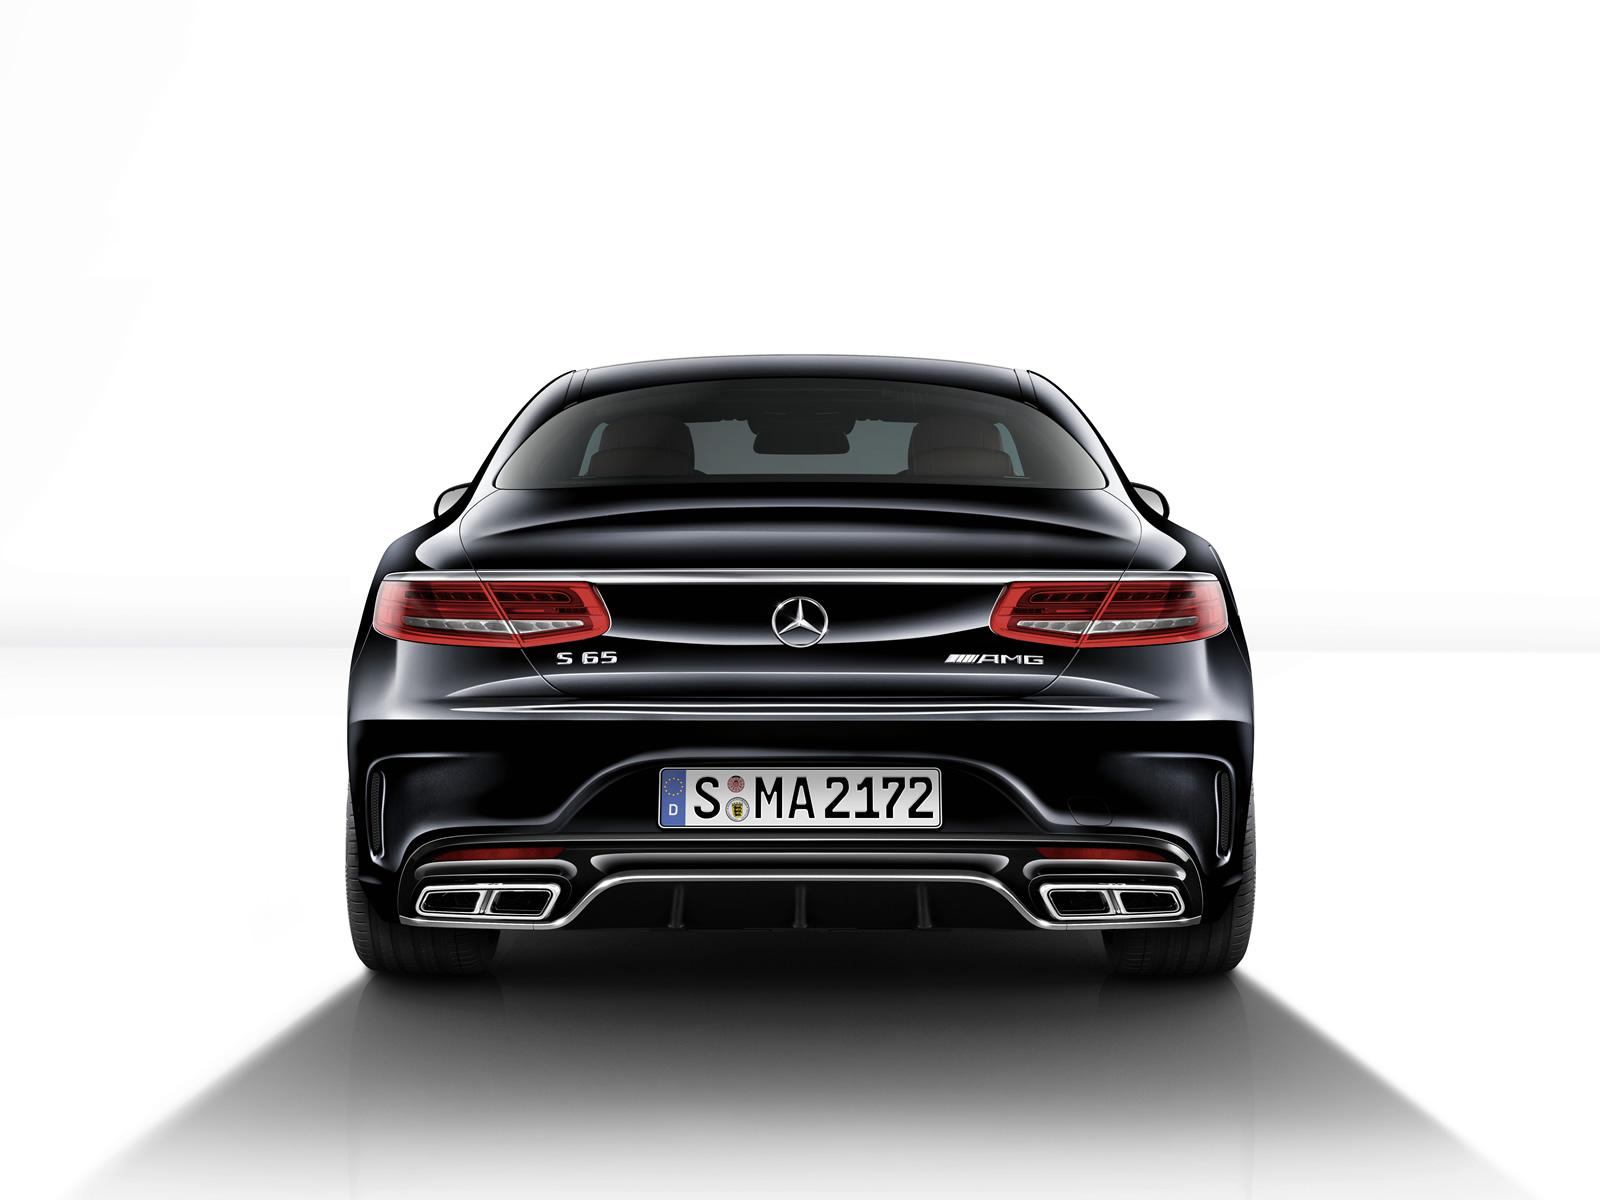 mercedes-benz s65 amg coupe priced from €244,009 in germany